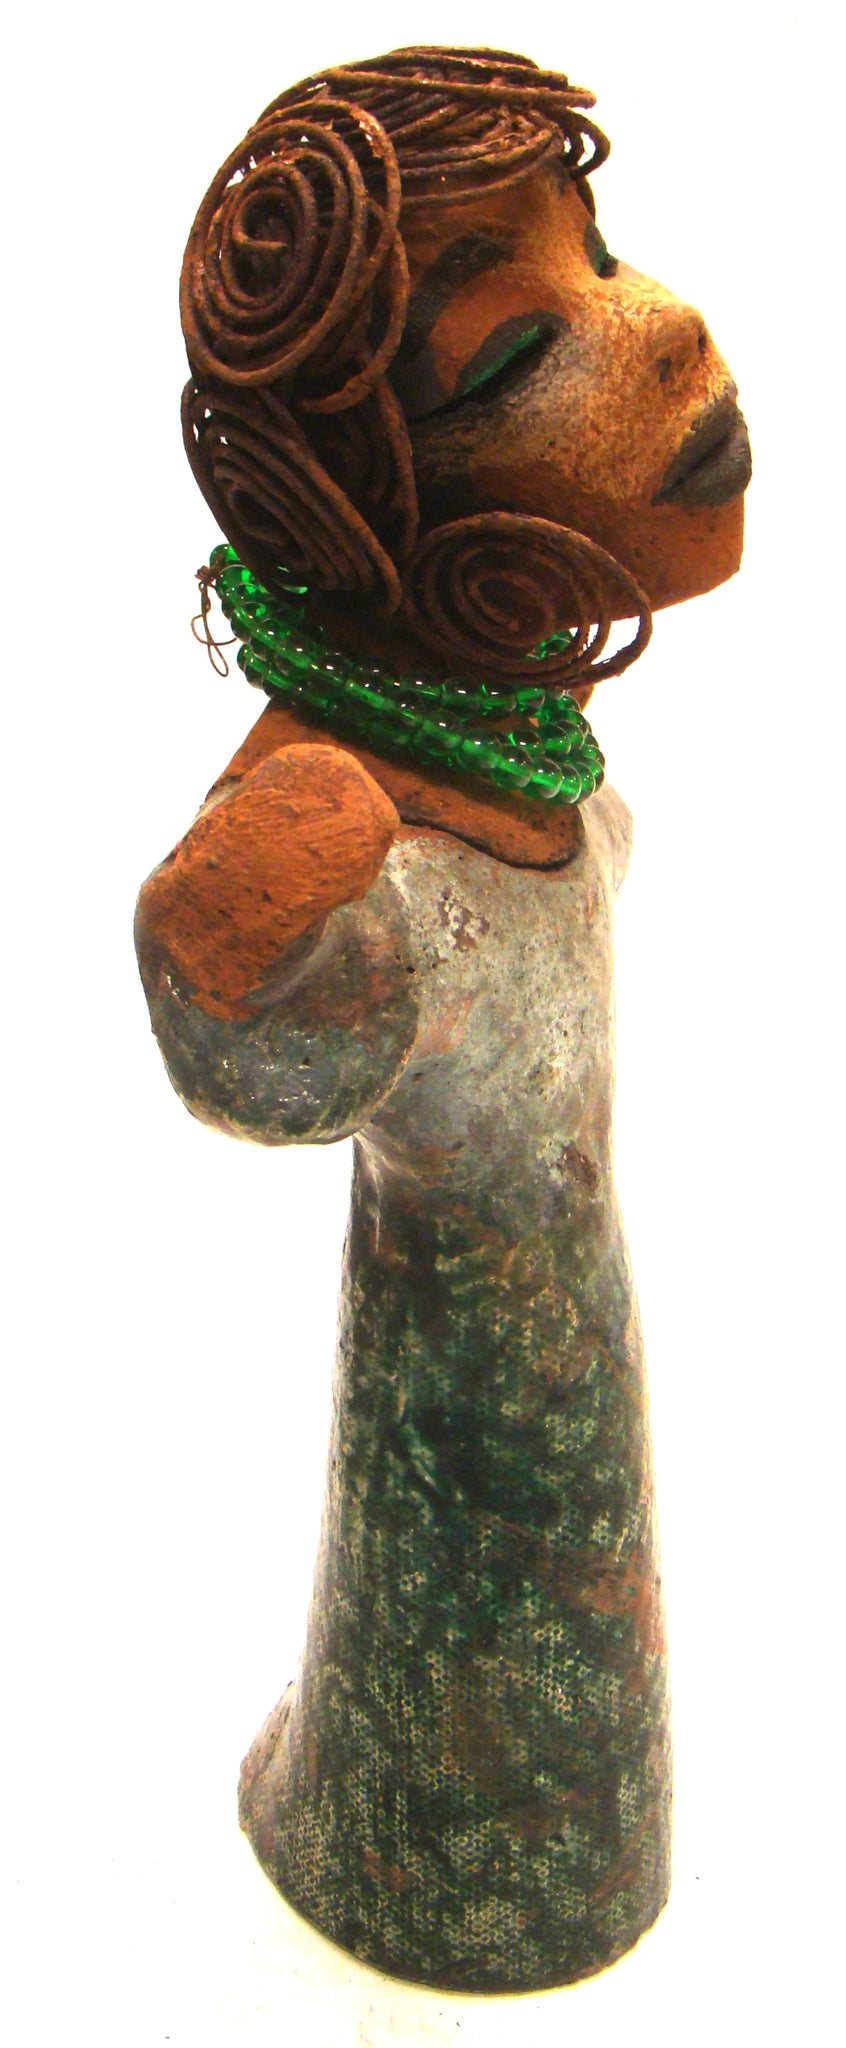 "Praise Him!      Praise Him stands 11"" x 6.5"" x 3"" and weighs 1 .11 lbs.     She has a lovely cocoa complexion.     Praise Him stands with outstretched arms.     She wears a metallic green green robe with a stand of mini green beads.     She has a over 15 feet of spiral rust wire hair.     Praise Him speaks to everyone.     Give this one of a kind a prominent place in your home.     Free Shipping!"